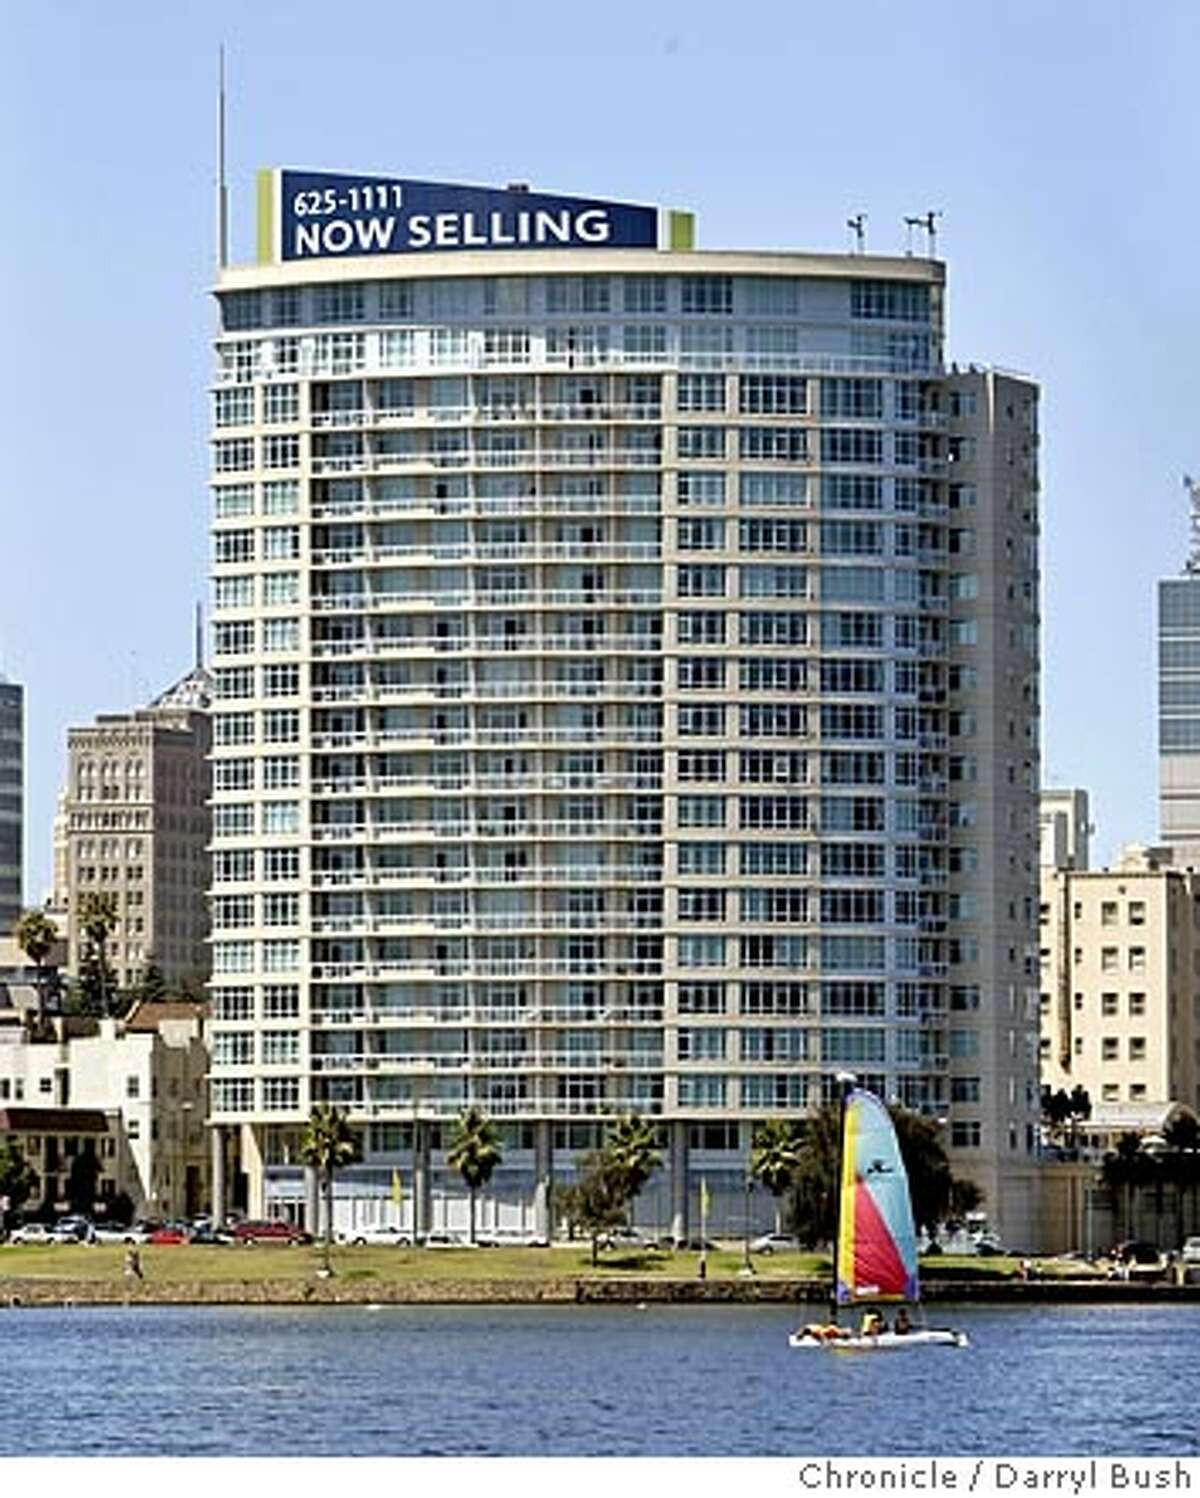 condos29_025_db.jpg The Essex on Lake Merritt, a high rise condominium, as seen from across Lake Merritt. 8/25/04 in Oakland Darryl Bush / The Chronicle Ran on: 08-29-2004 Prices have tripled in seven years at the Park Bellevue, left. The Essex, above, went condo this month. Ran on: 08-29-2004 Ran on: 08-29-2004 Ran on: 08-29-2004 MANDATORY CREDIT FOR PHOTOG AND SF CHRONICLE/ -MAGS OUT